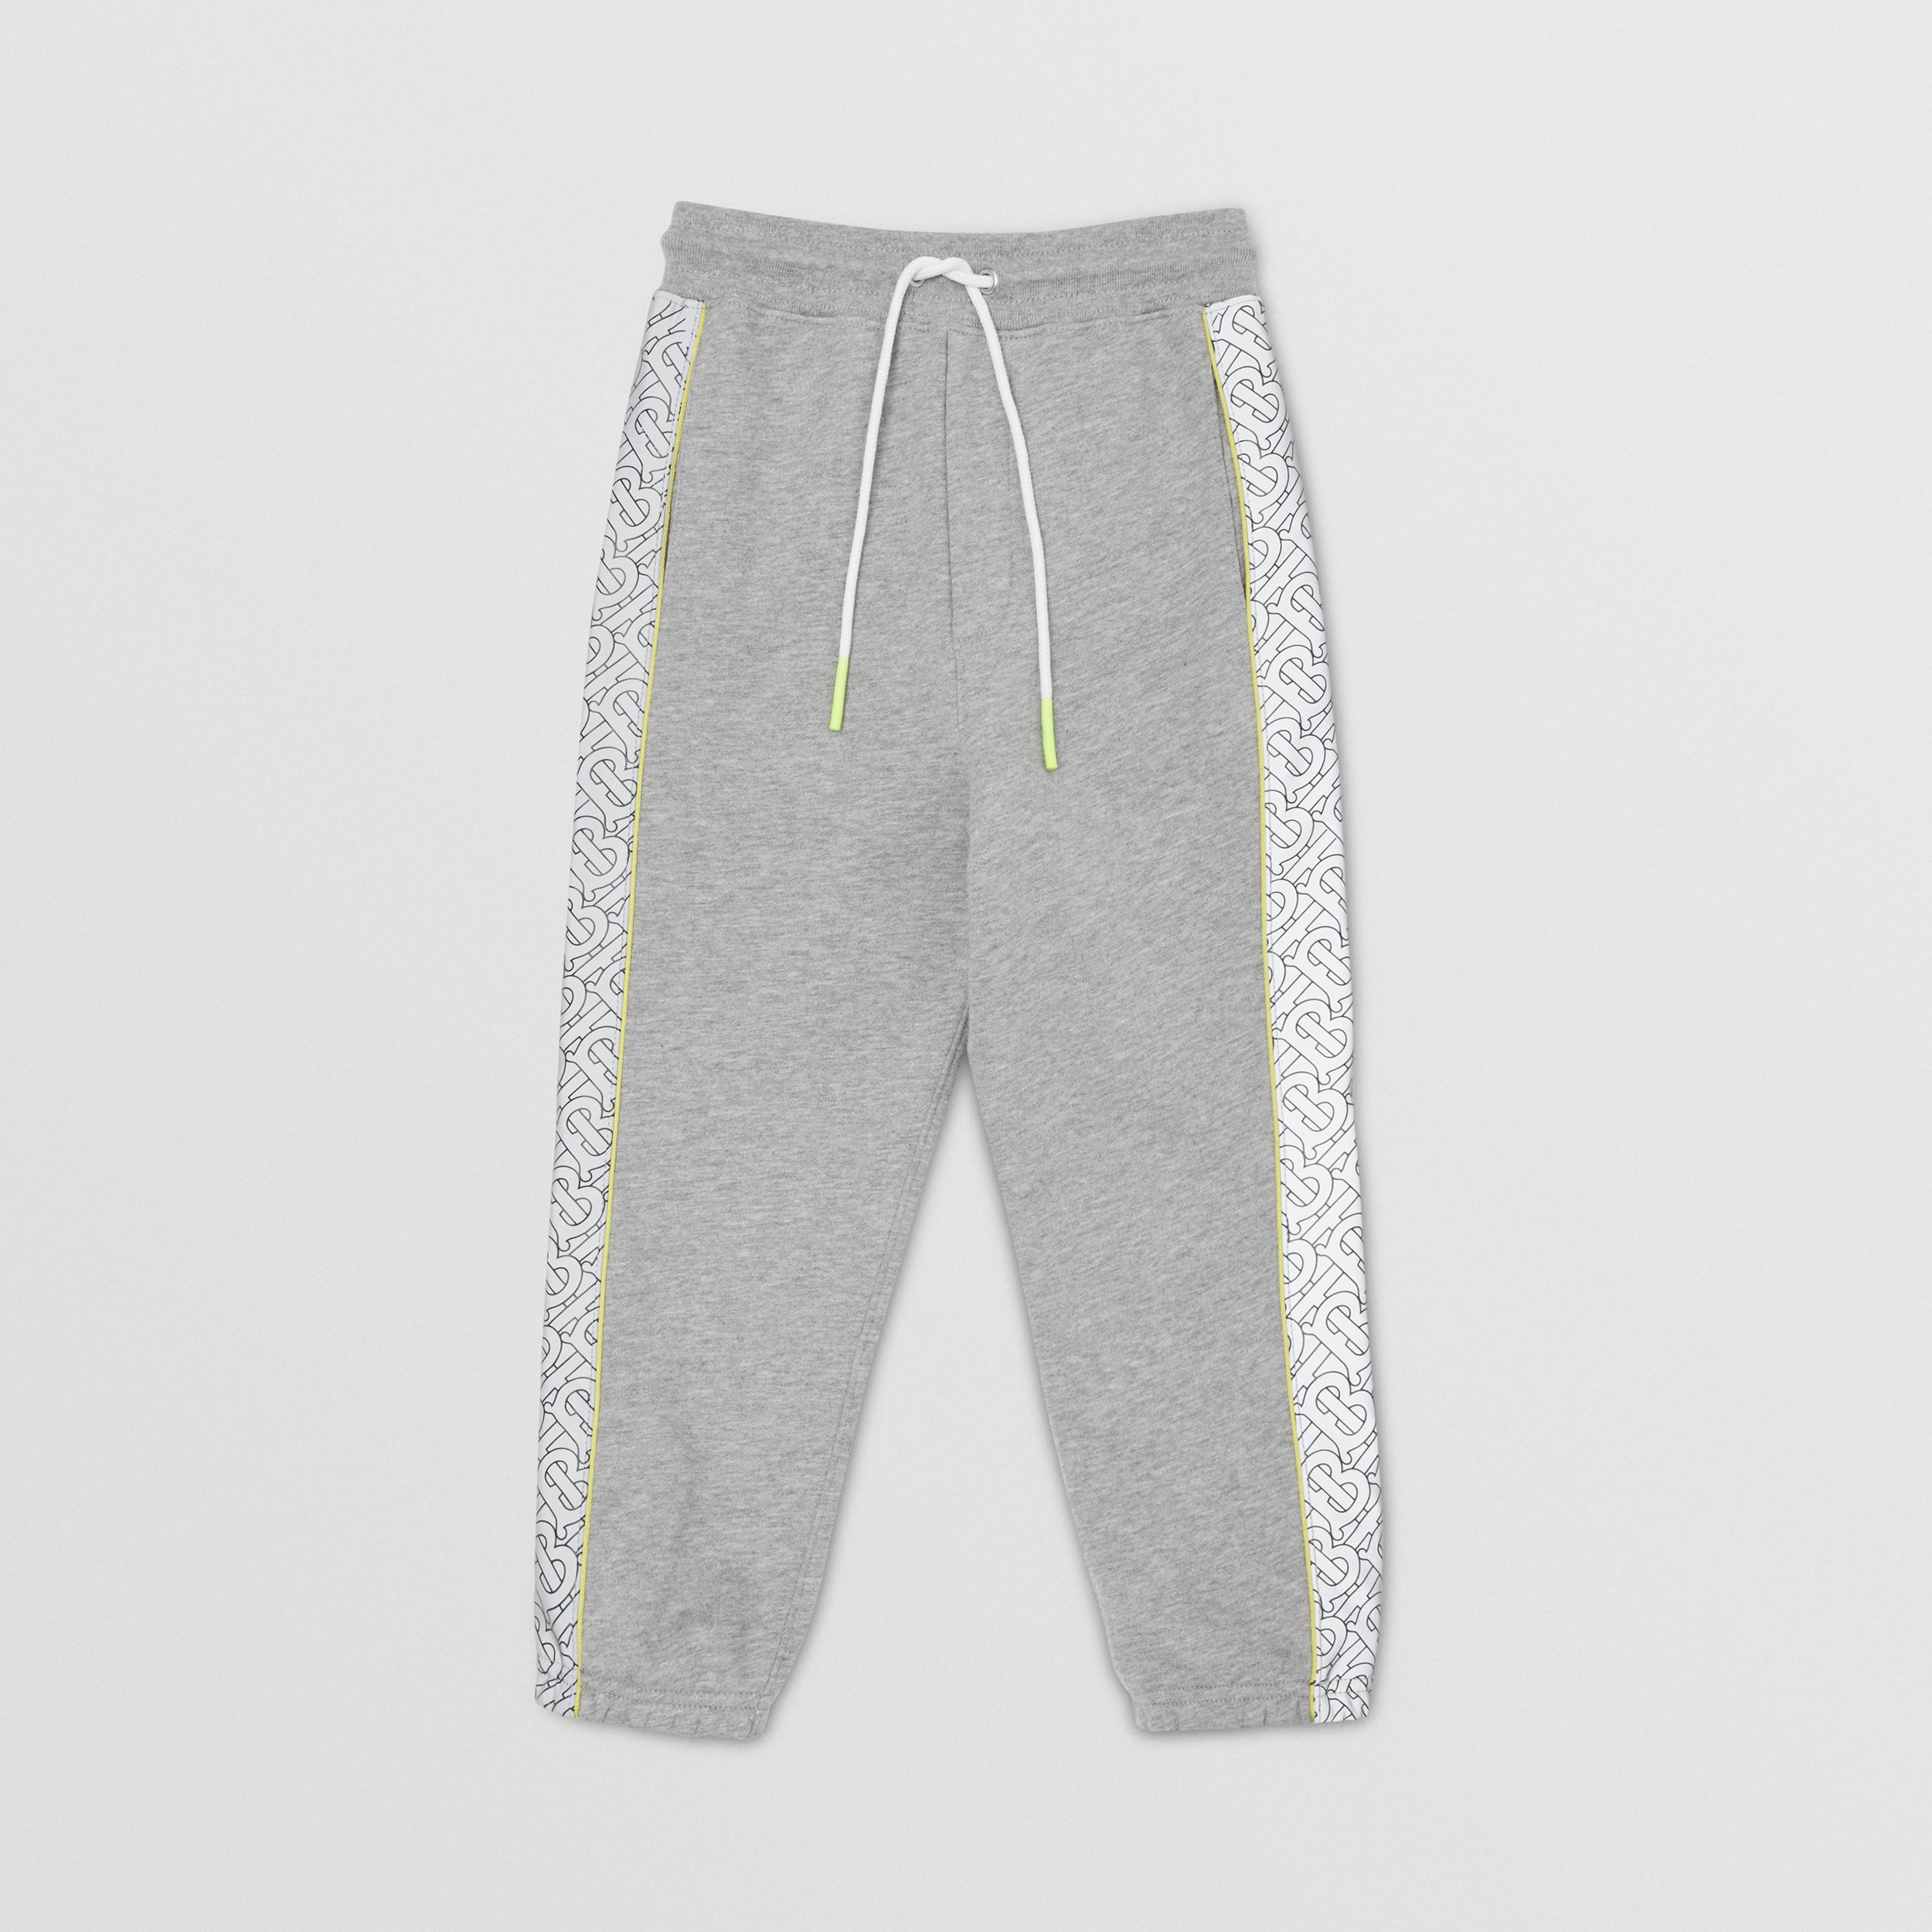 Monogram Print Panel Cotton Jogging Pants in Grey Melange | Burberry Canada - 1